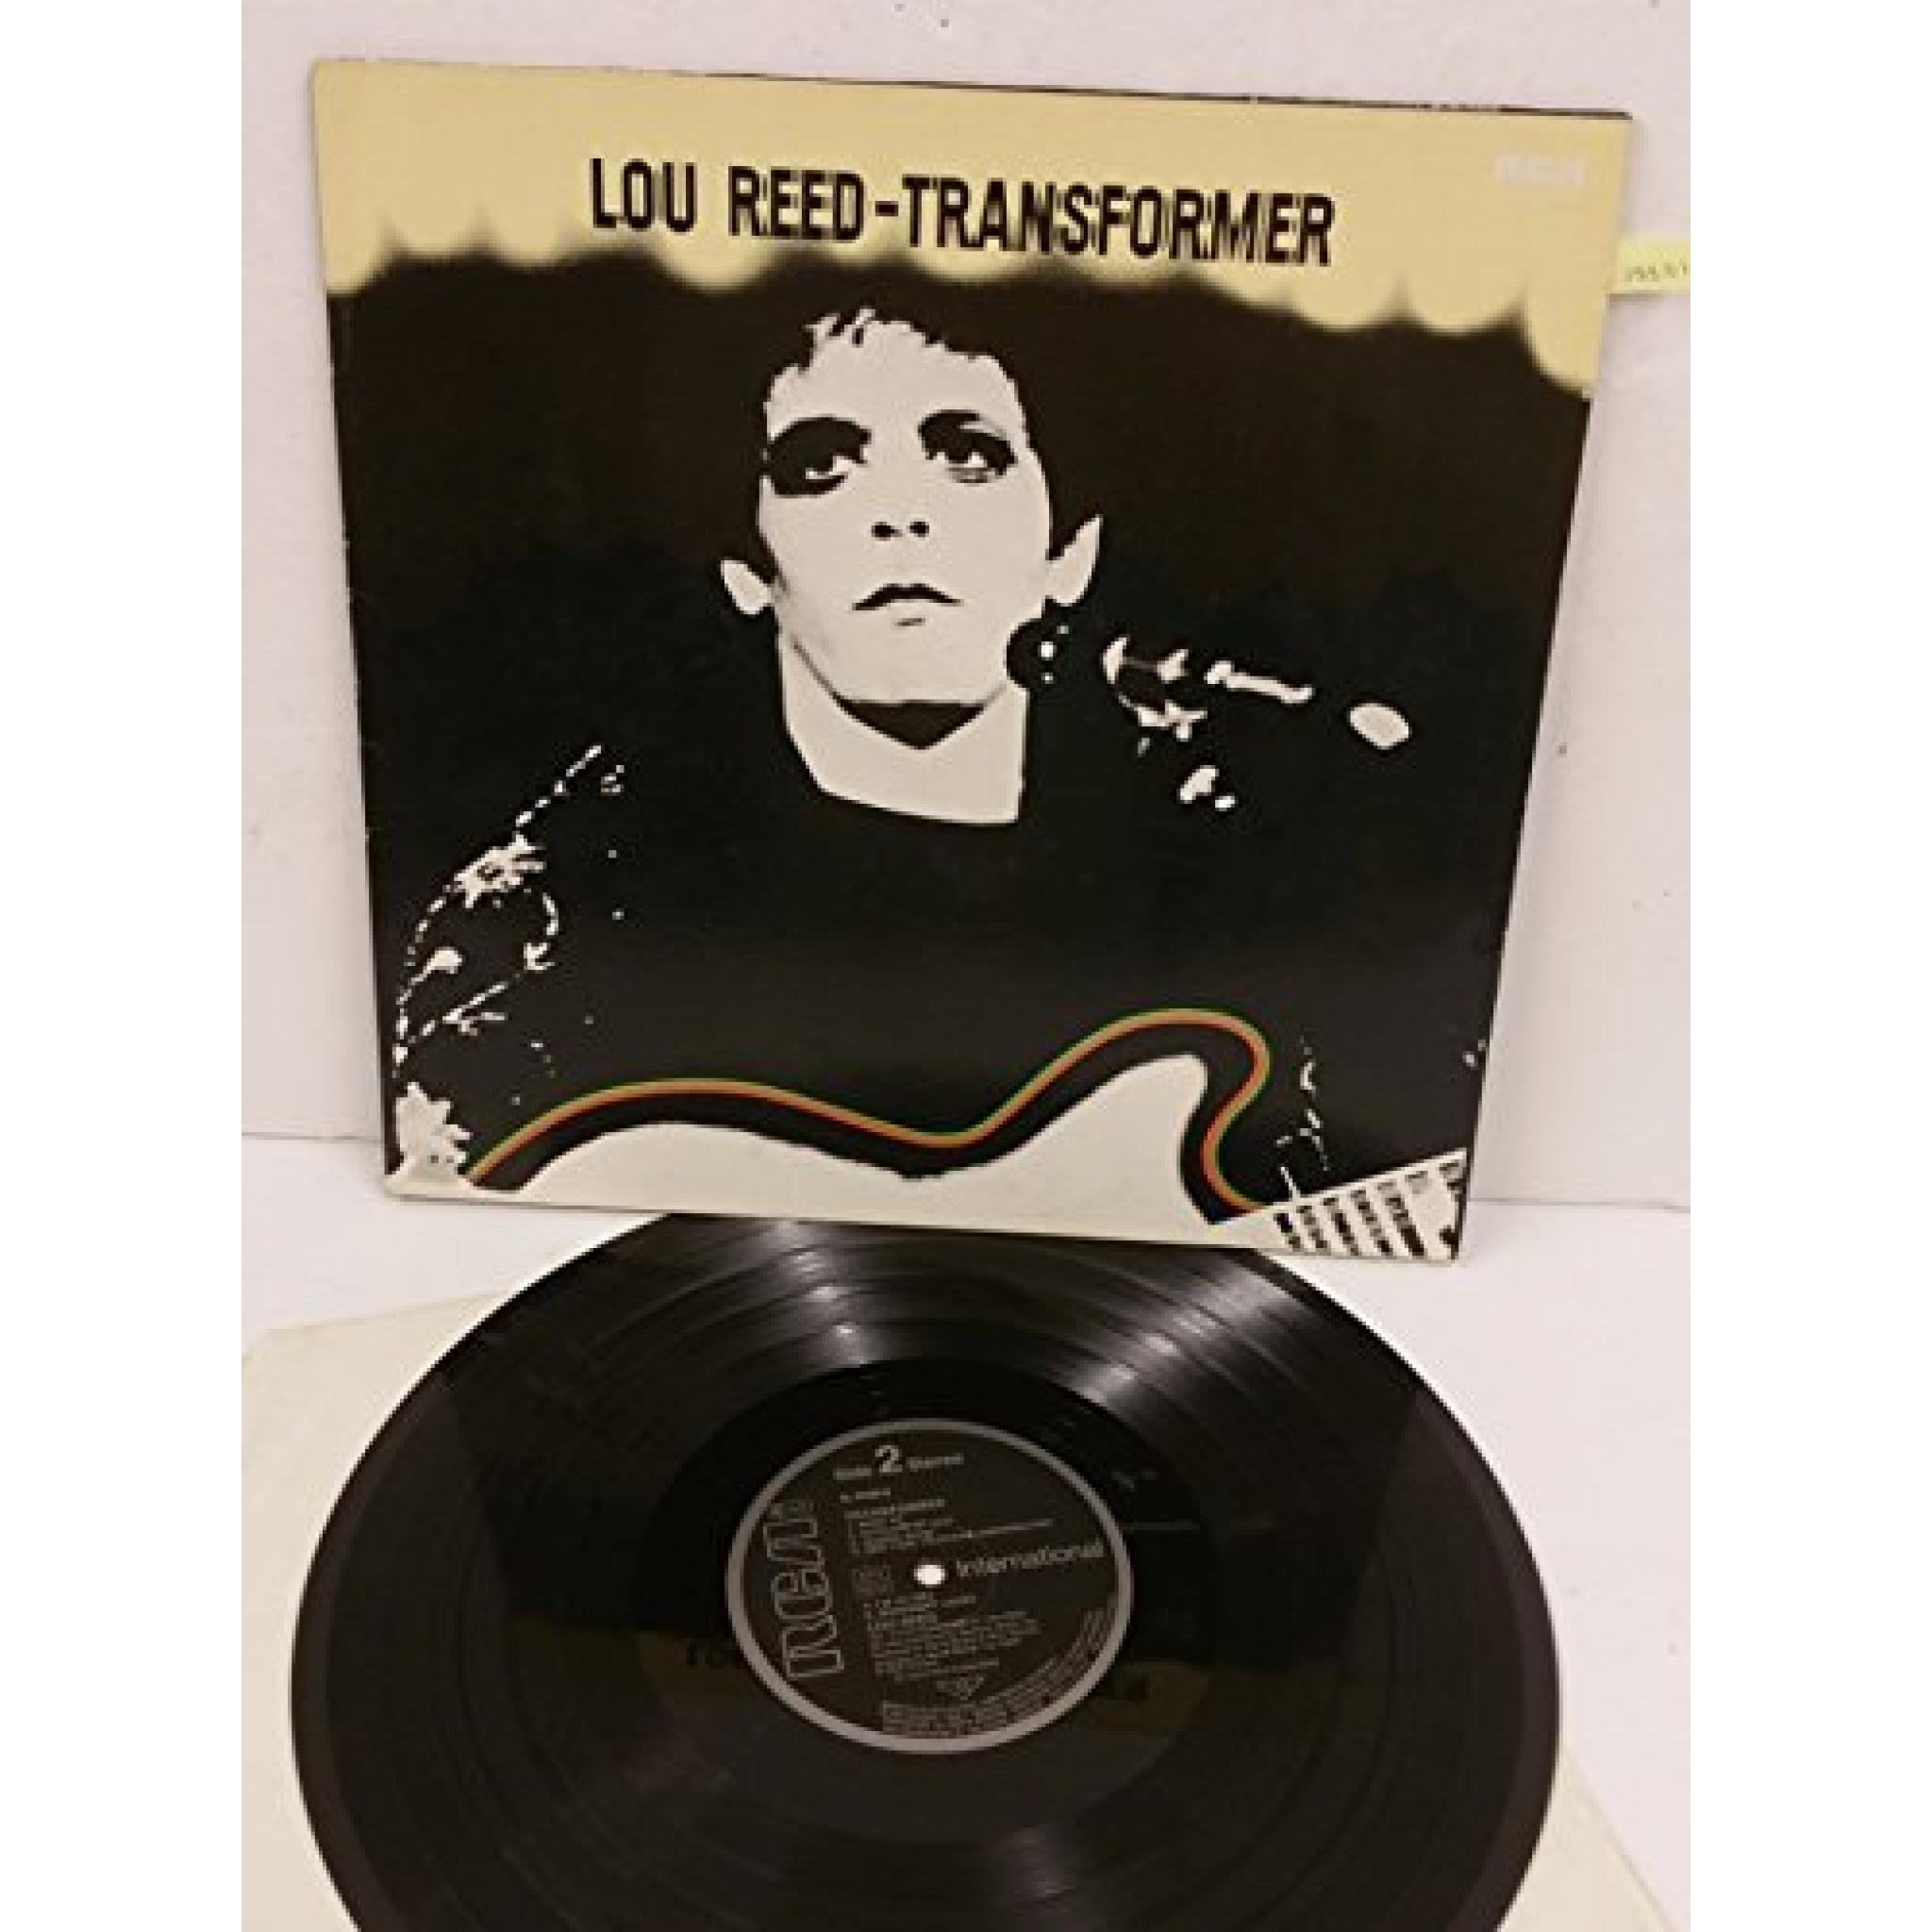 LOU REED transformer, INTS 5061